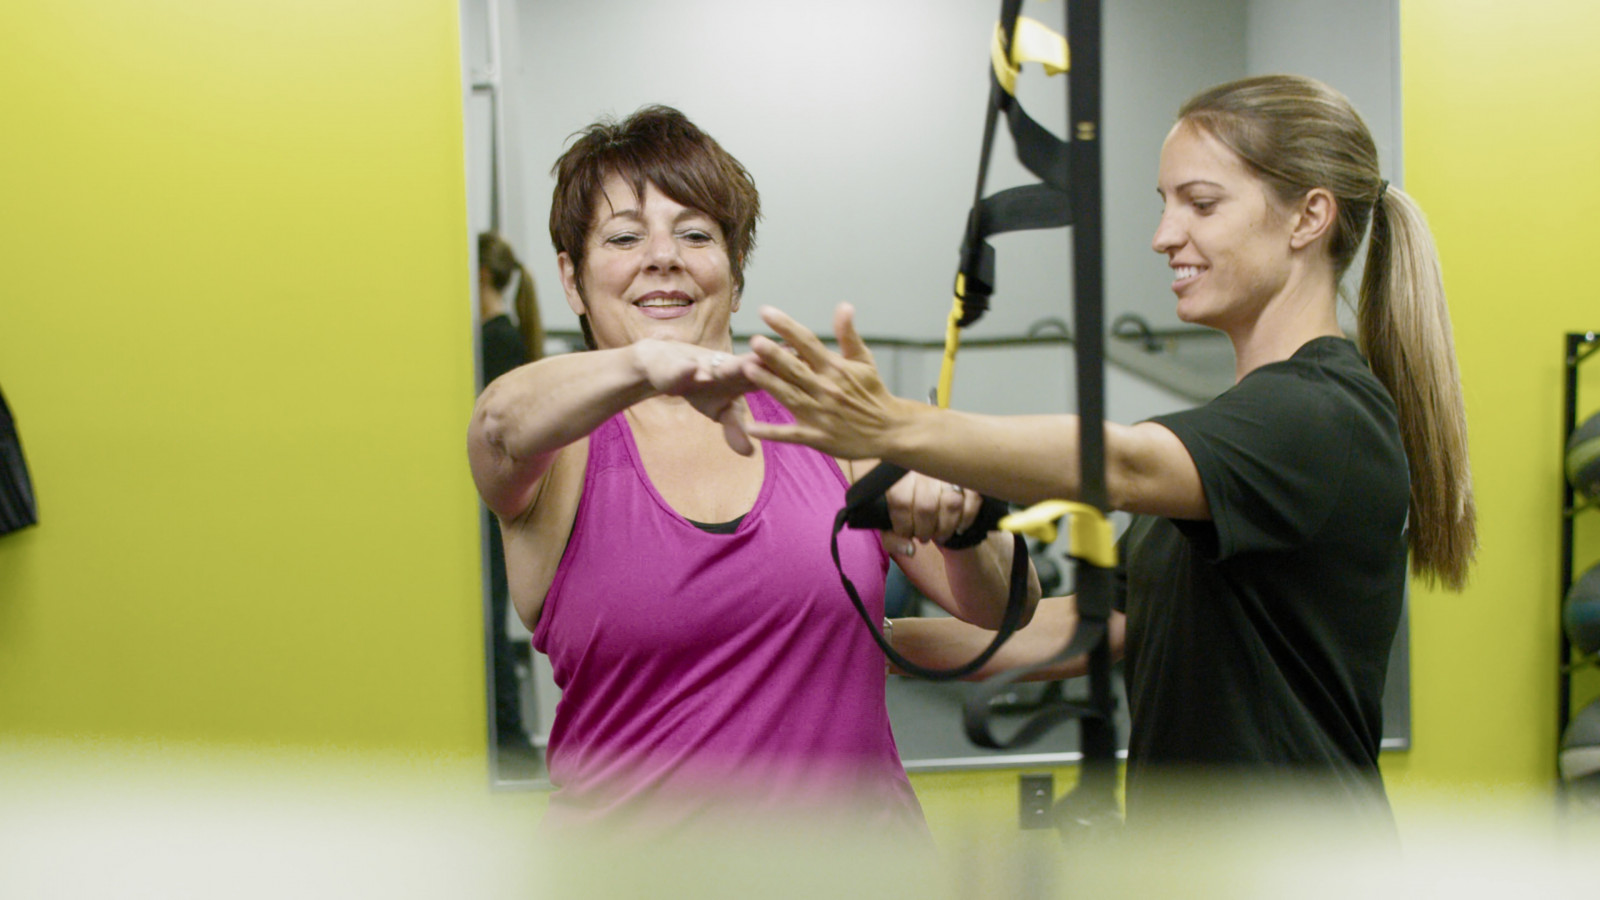 Fitness Together Point Loma personal training gym is the Best